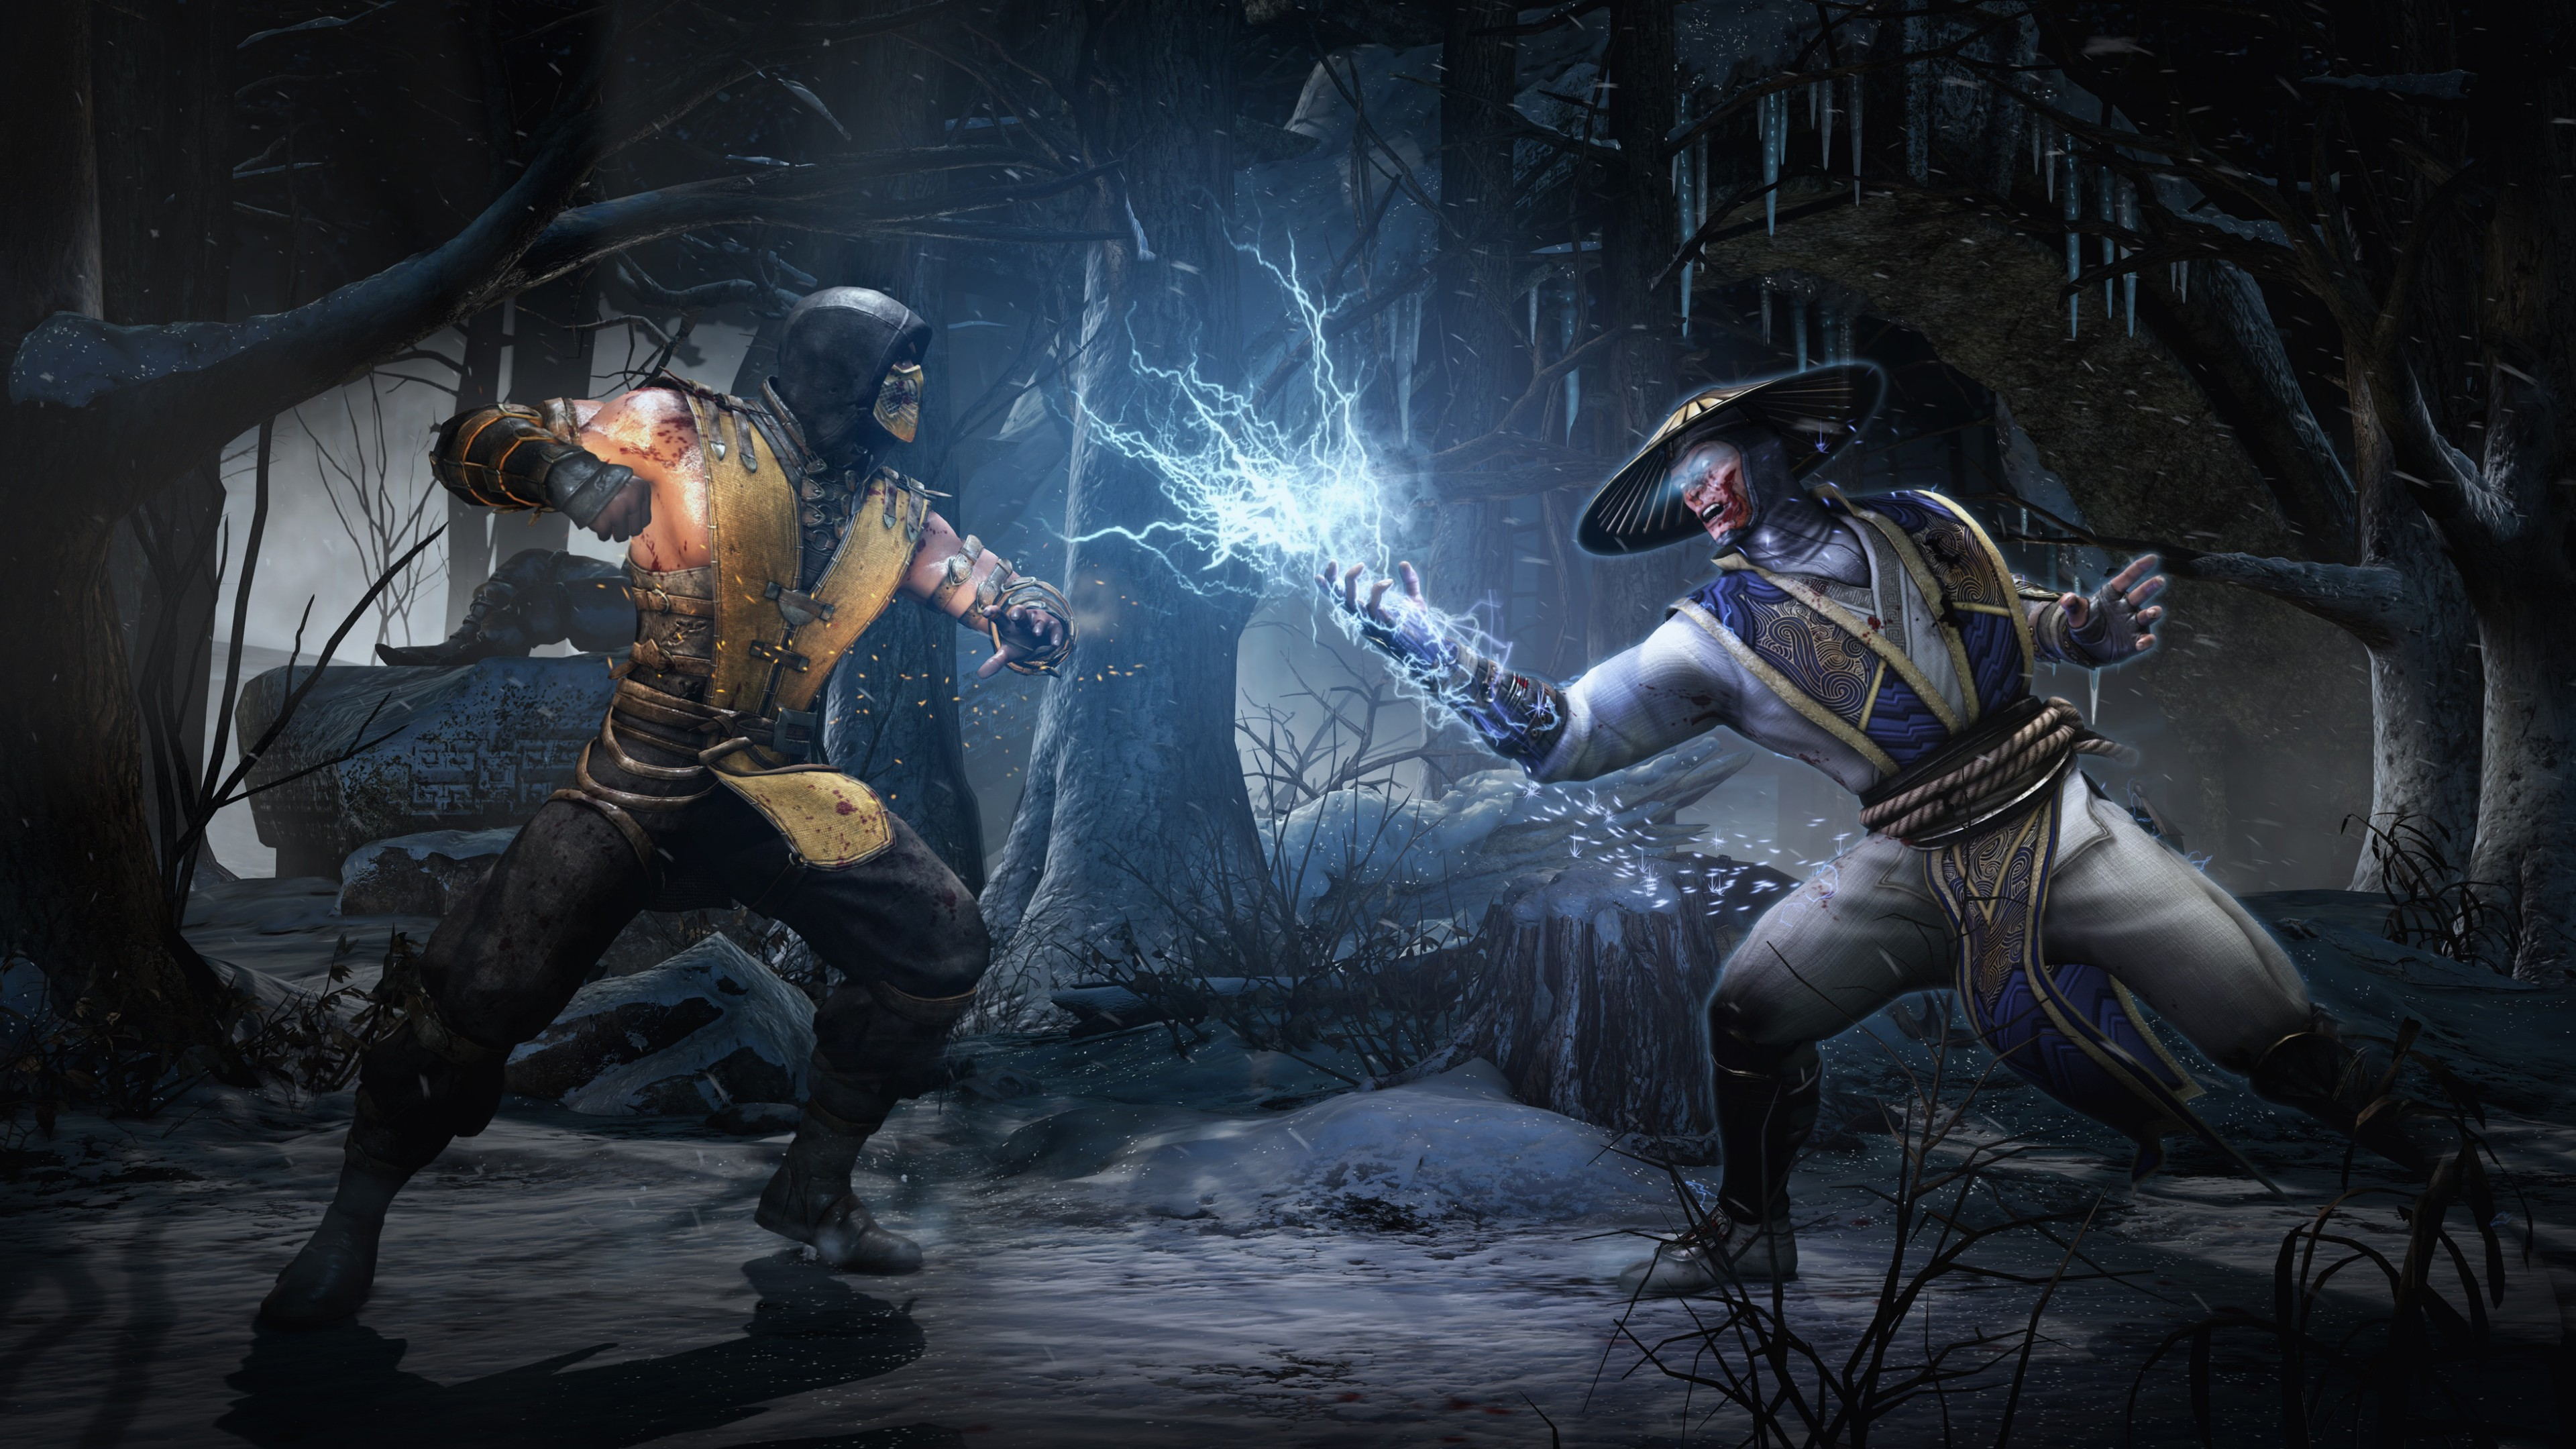 Wallpaper Mortal Kombat X Game Fighting Scorpion Raiden